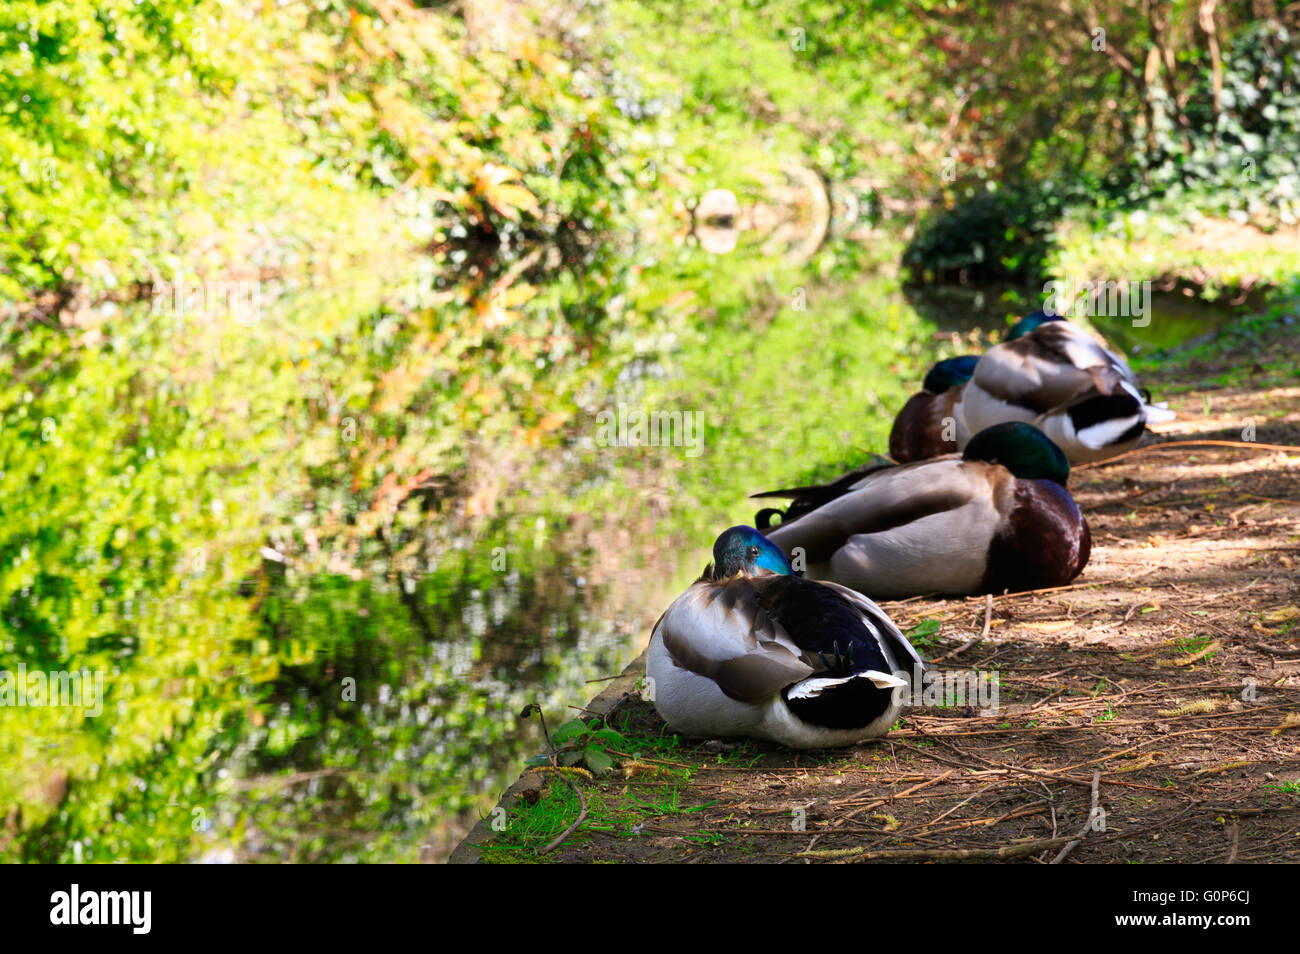 Ducks Resting in dappled sunlight at the Bank of the canal Waterway at the New River Walk, Canonbury, London - Stock Image